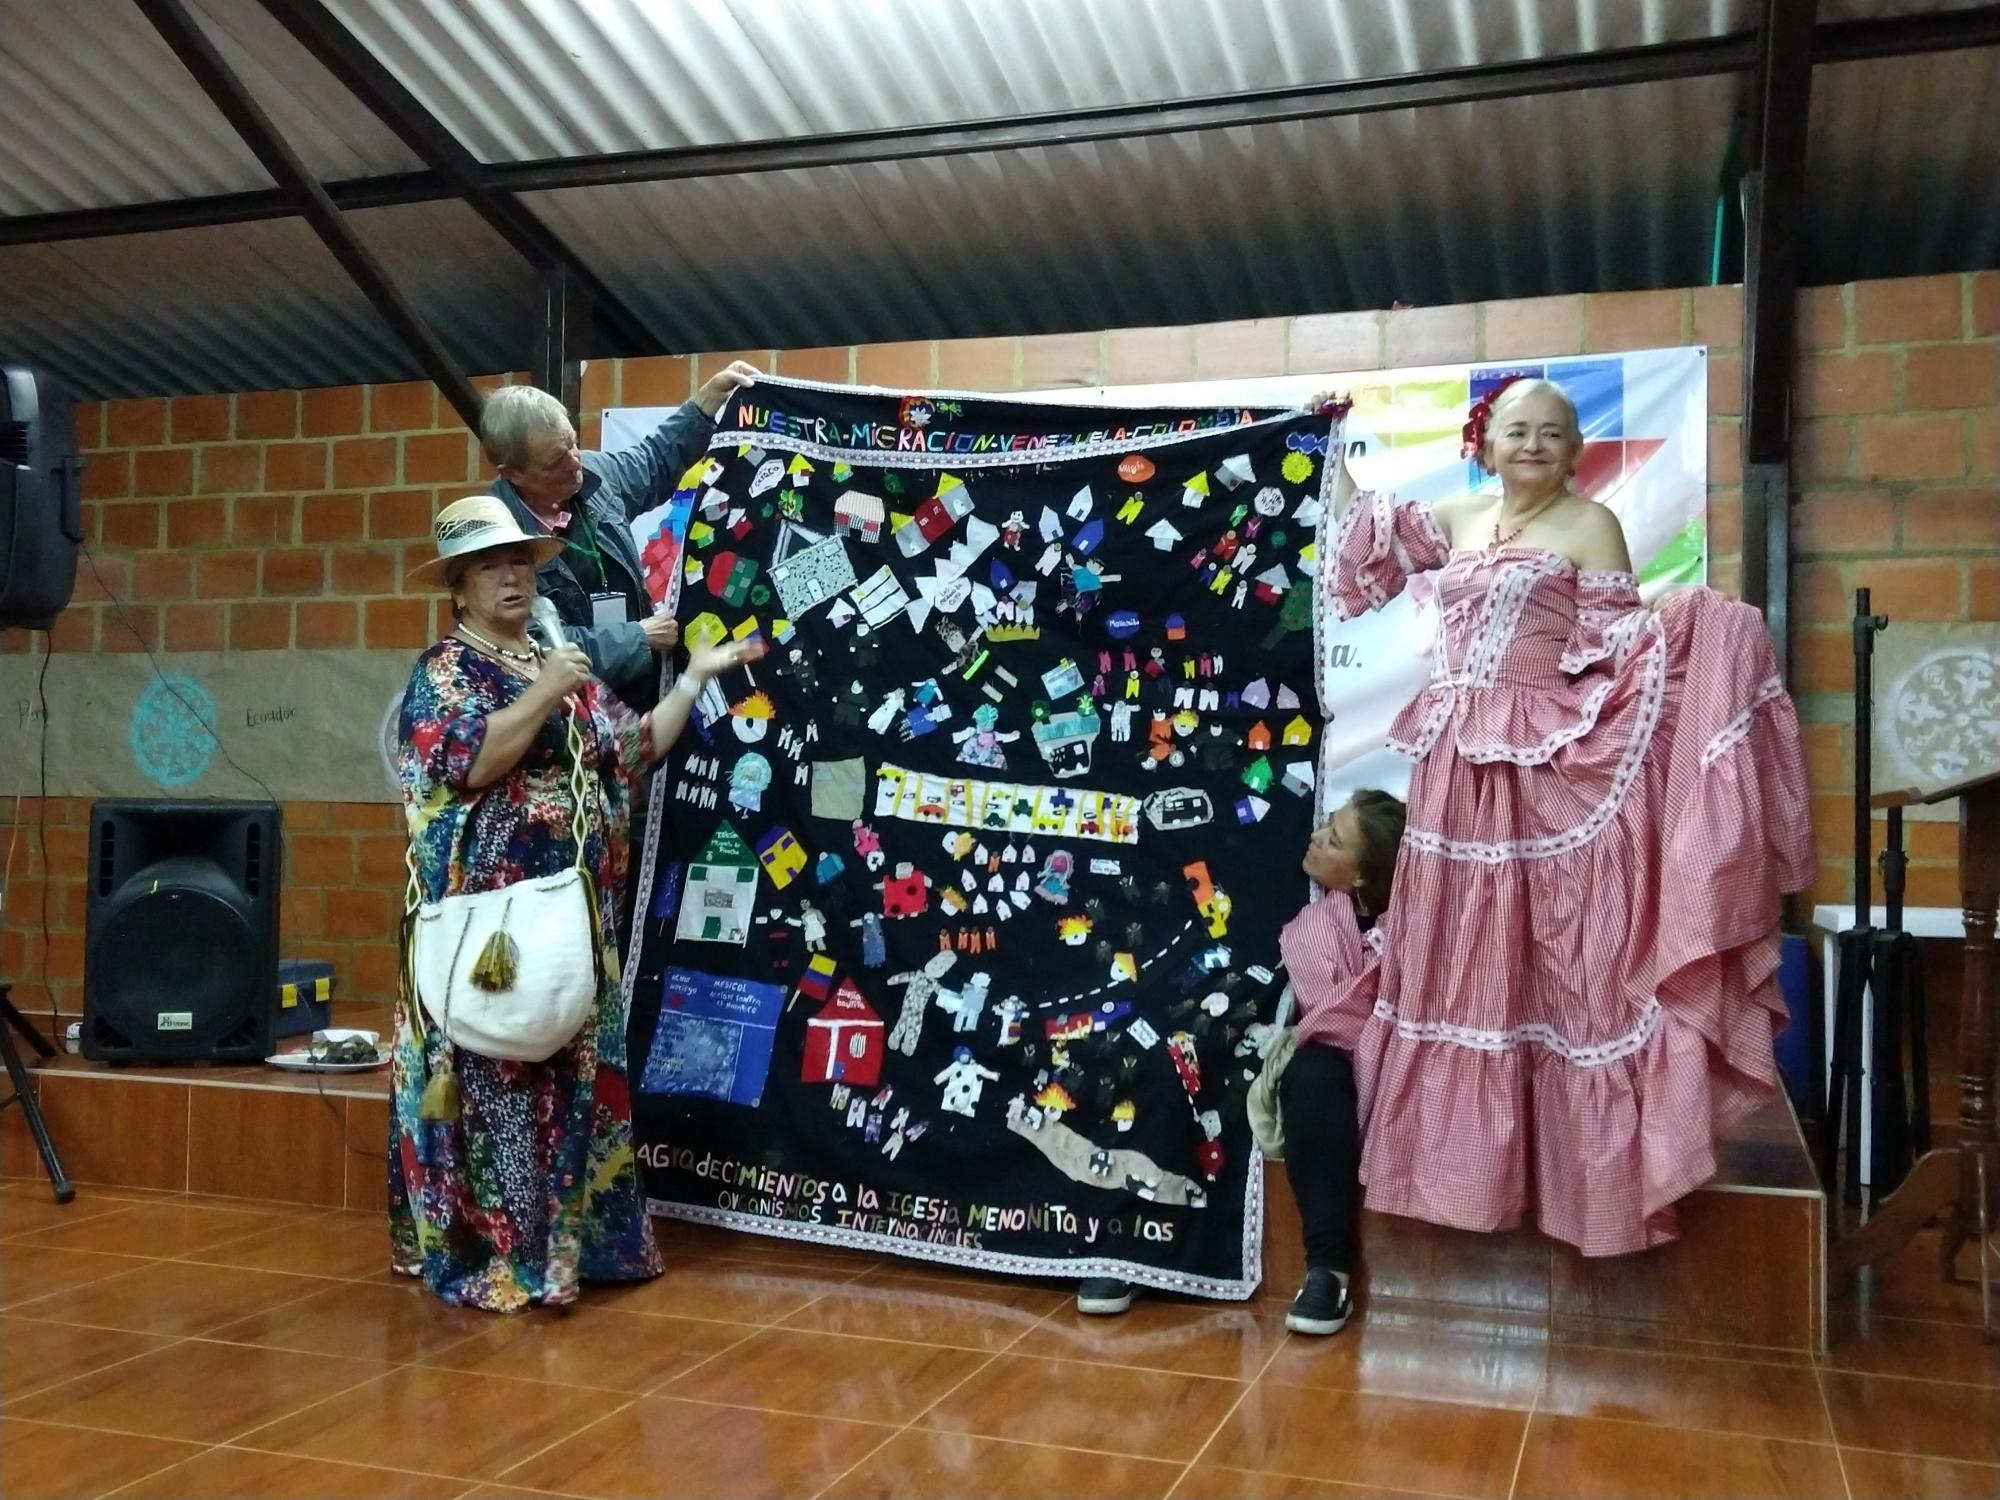 Pastor María de Melo of Iglesia Cristiana Menonita de Riohacha displays a quilt into which Venezuelan refugees have sewed their migration story to process their trauma. Photo: Linda Shelly.